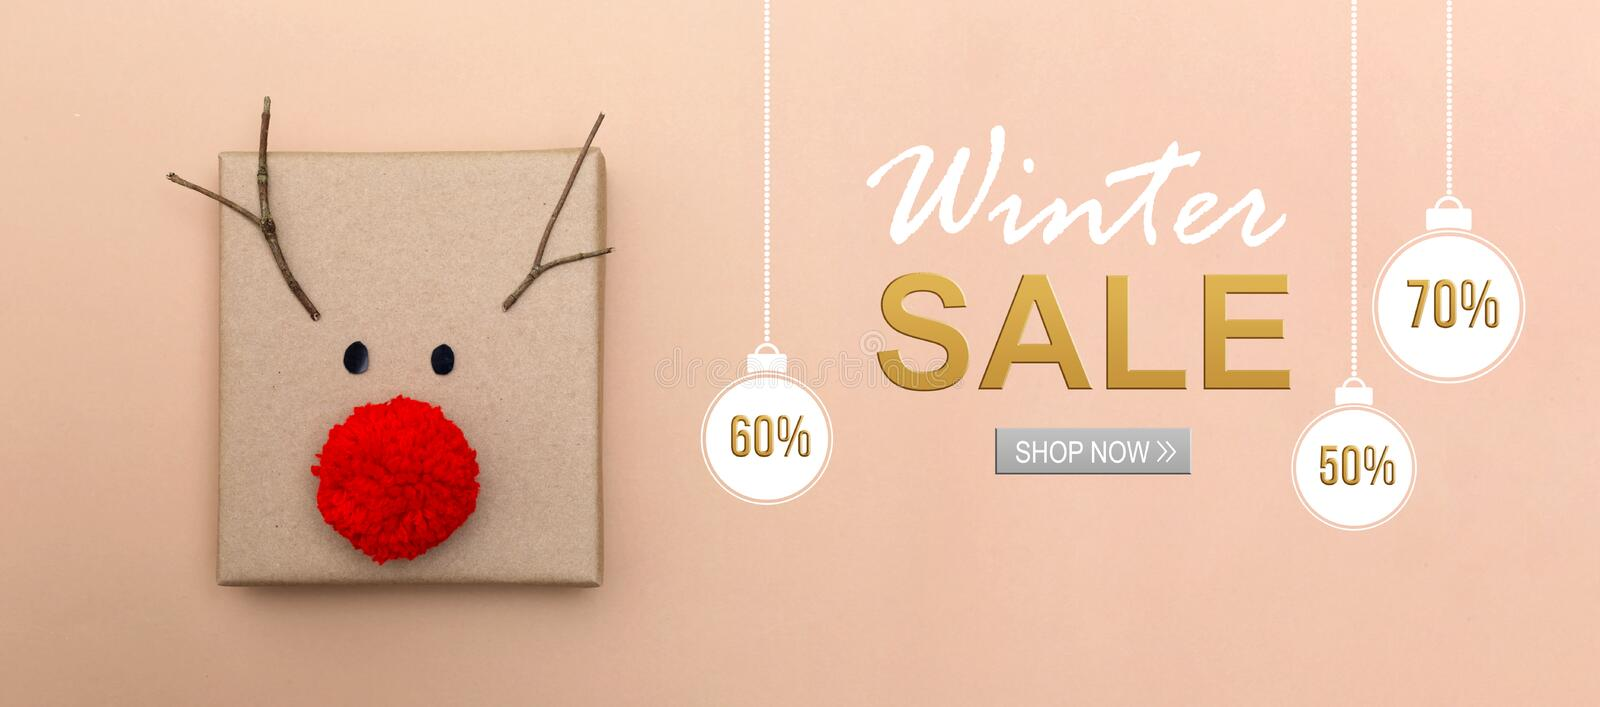 Winter sale message with a reindeer gift box stock images